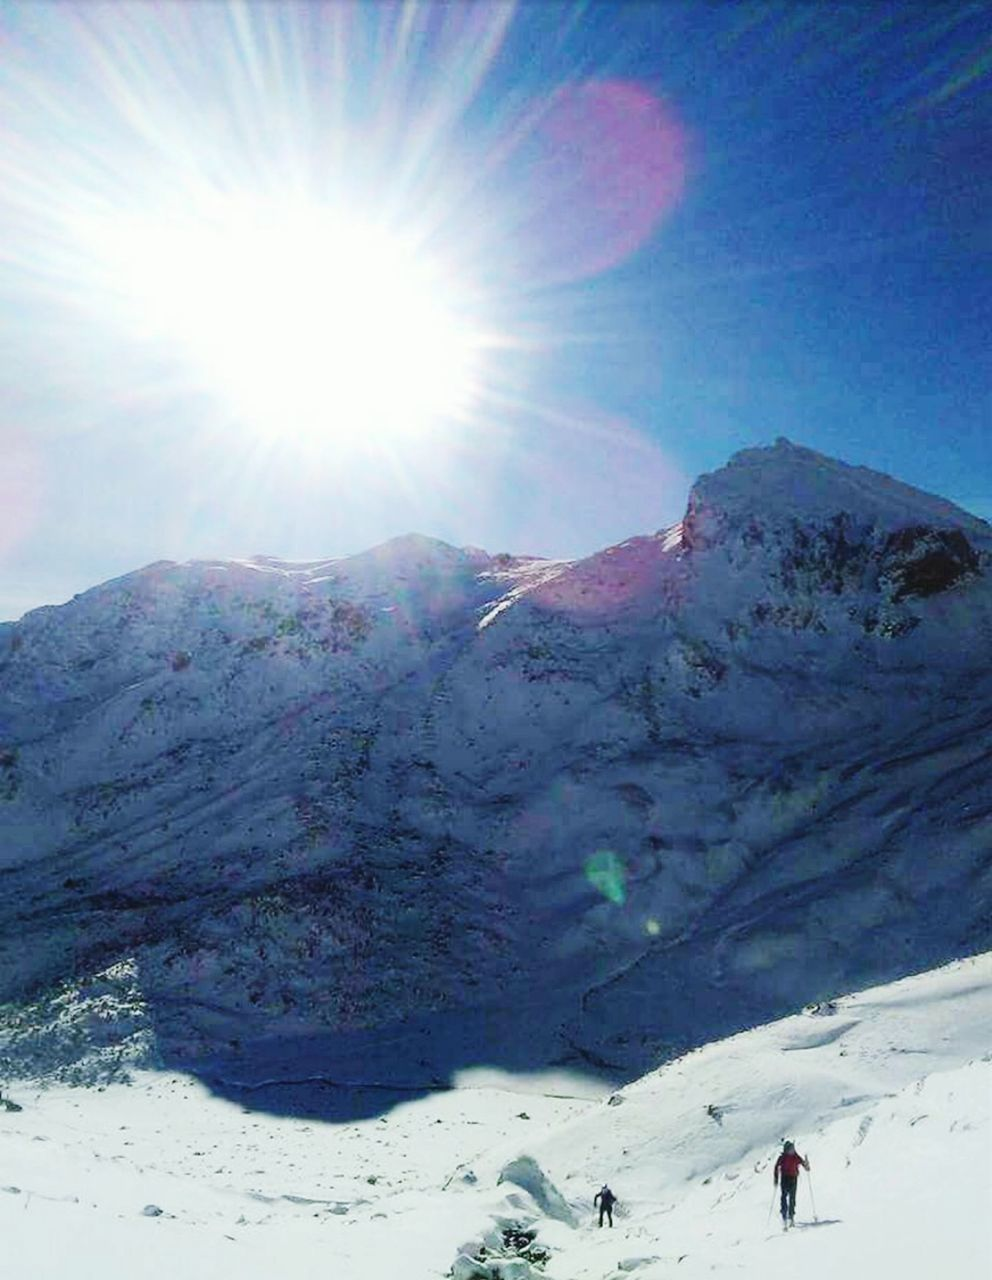 sunlight, snow, winter, lens flare, sun, mountain, nature, sunbeam, cold temperature, beauty in nature, scenics, tranquility, leisure activity, adventure, real people, vacations, weather, day, idyllic, tranquil scene, landscape, outdoors, snowcapped mountain, physical geography, sky, hiking, ski holiday, mountain range